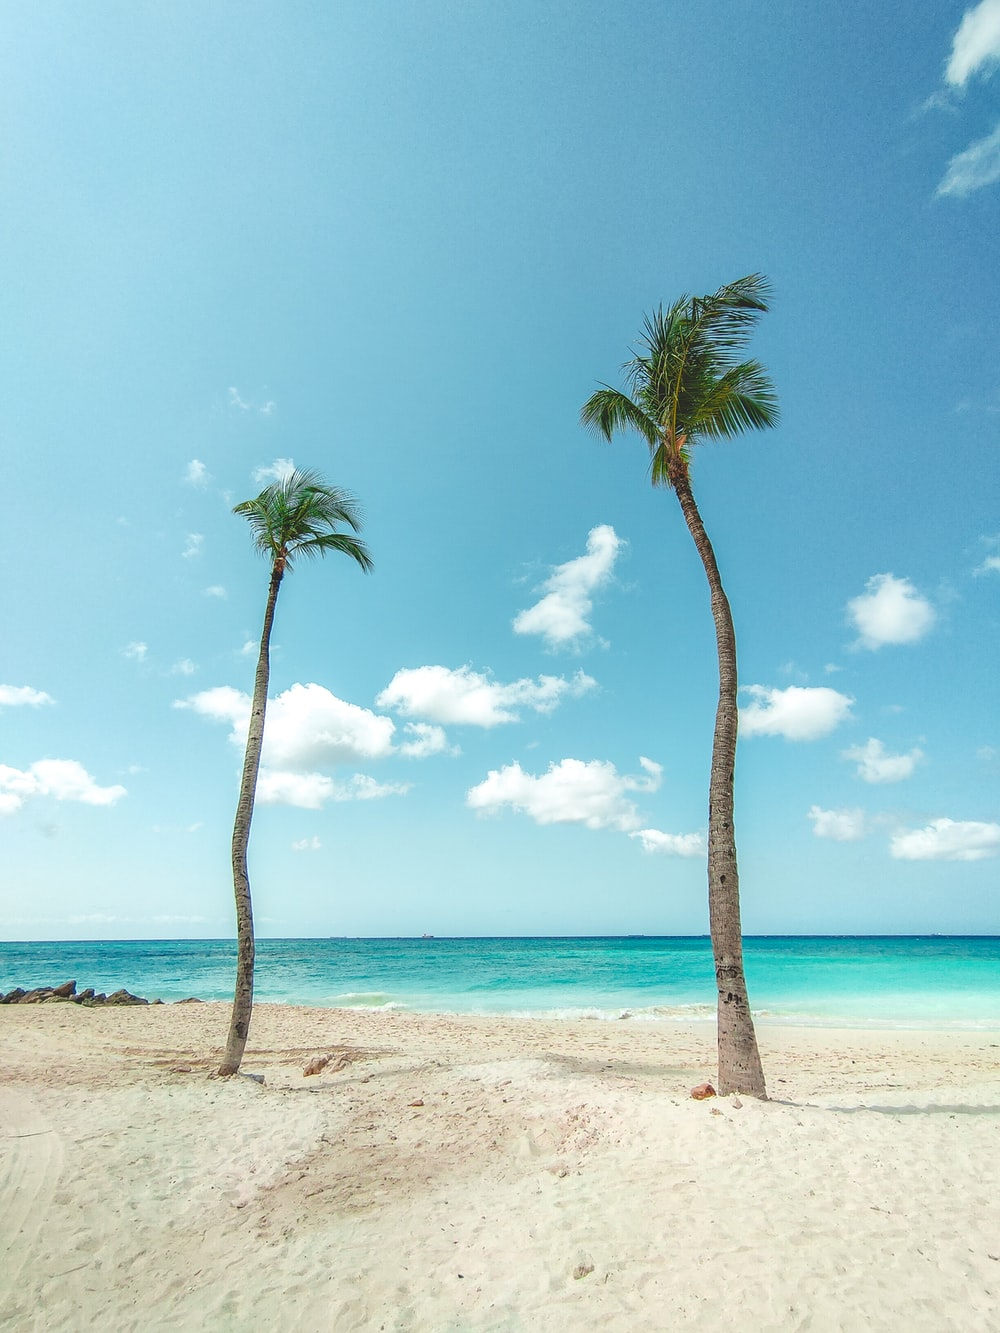 palm trees on beach during daytime